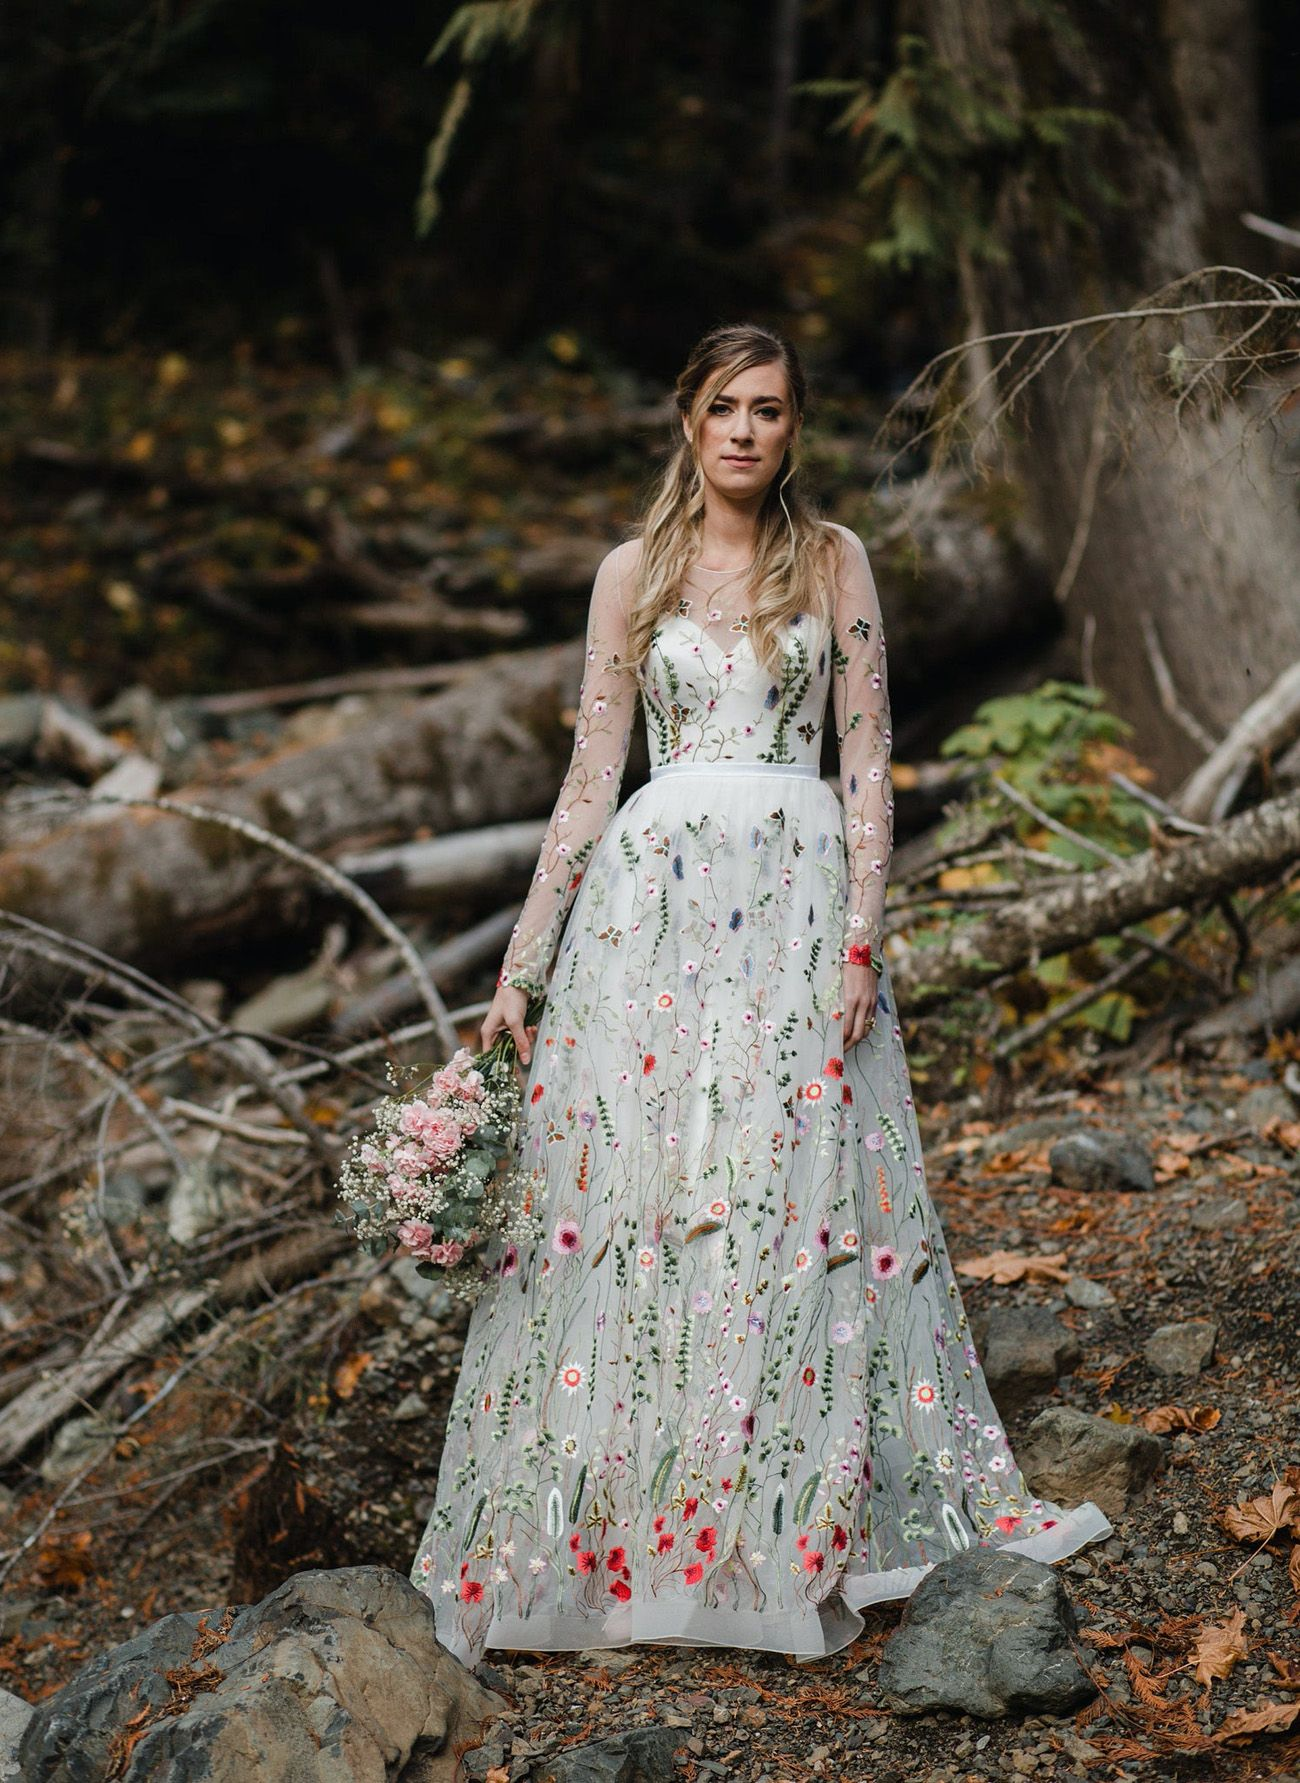 Trending Now The Embroidered Wedding Dress These Colorful Floral Gowns Are Turning Heads Green Wedding Shoes In 2020 Wedding Dresses With Flowers Embroidered Wedding Dress White Bridal Gown